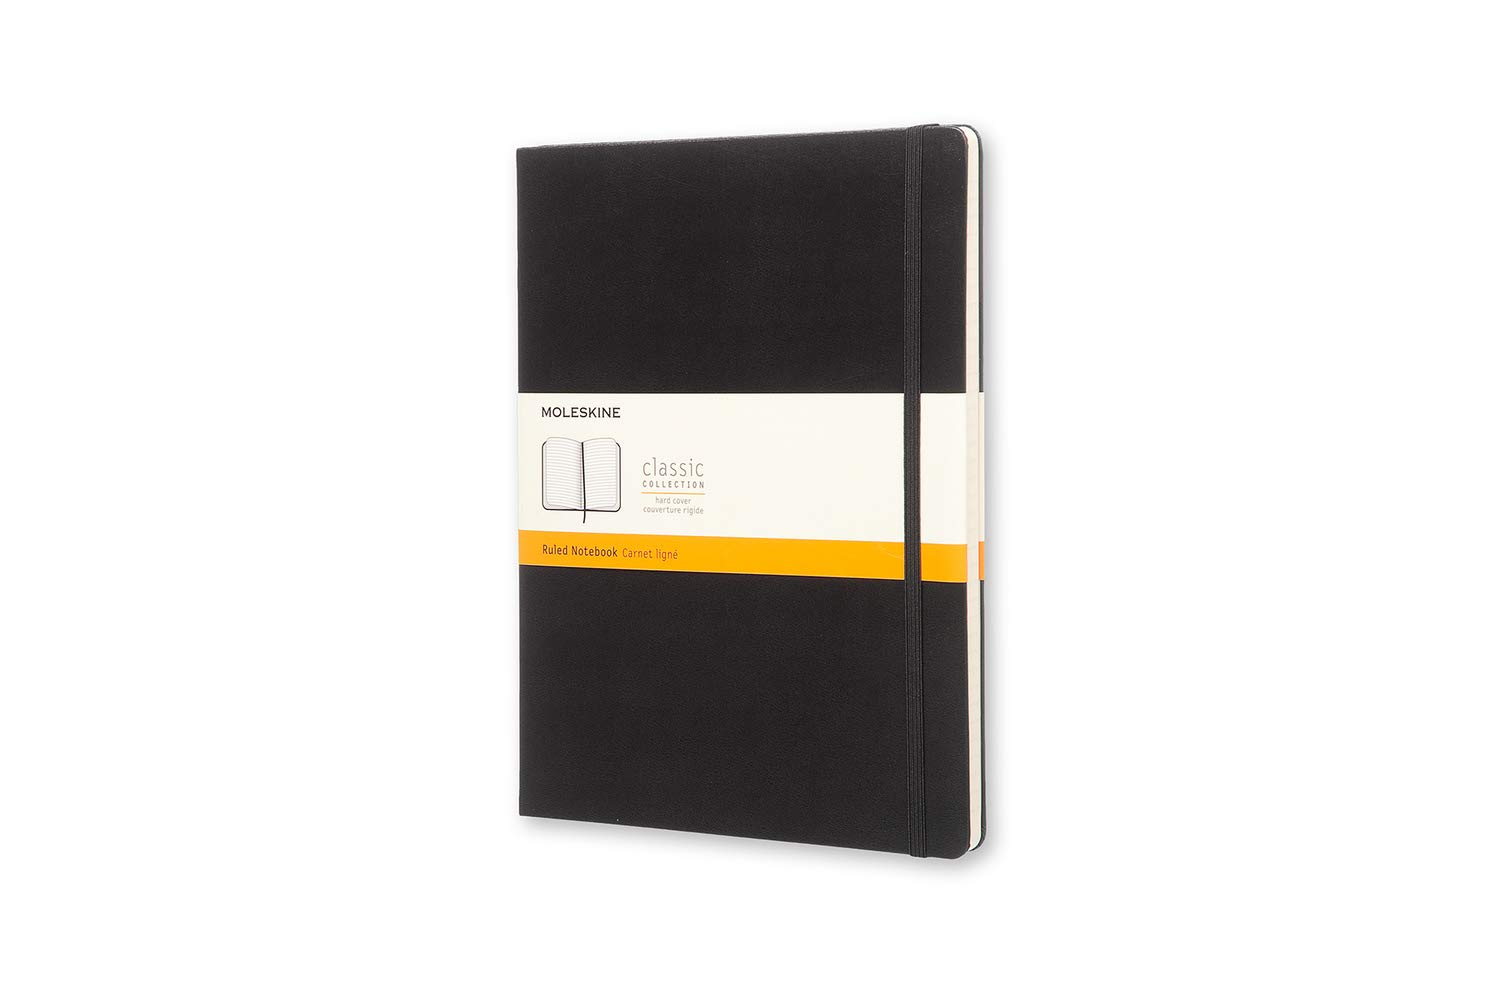 Moleskine Classic Notebook, Hard Cover, XL (7.5'' x 9.5'') Ruled/Lined, Black